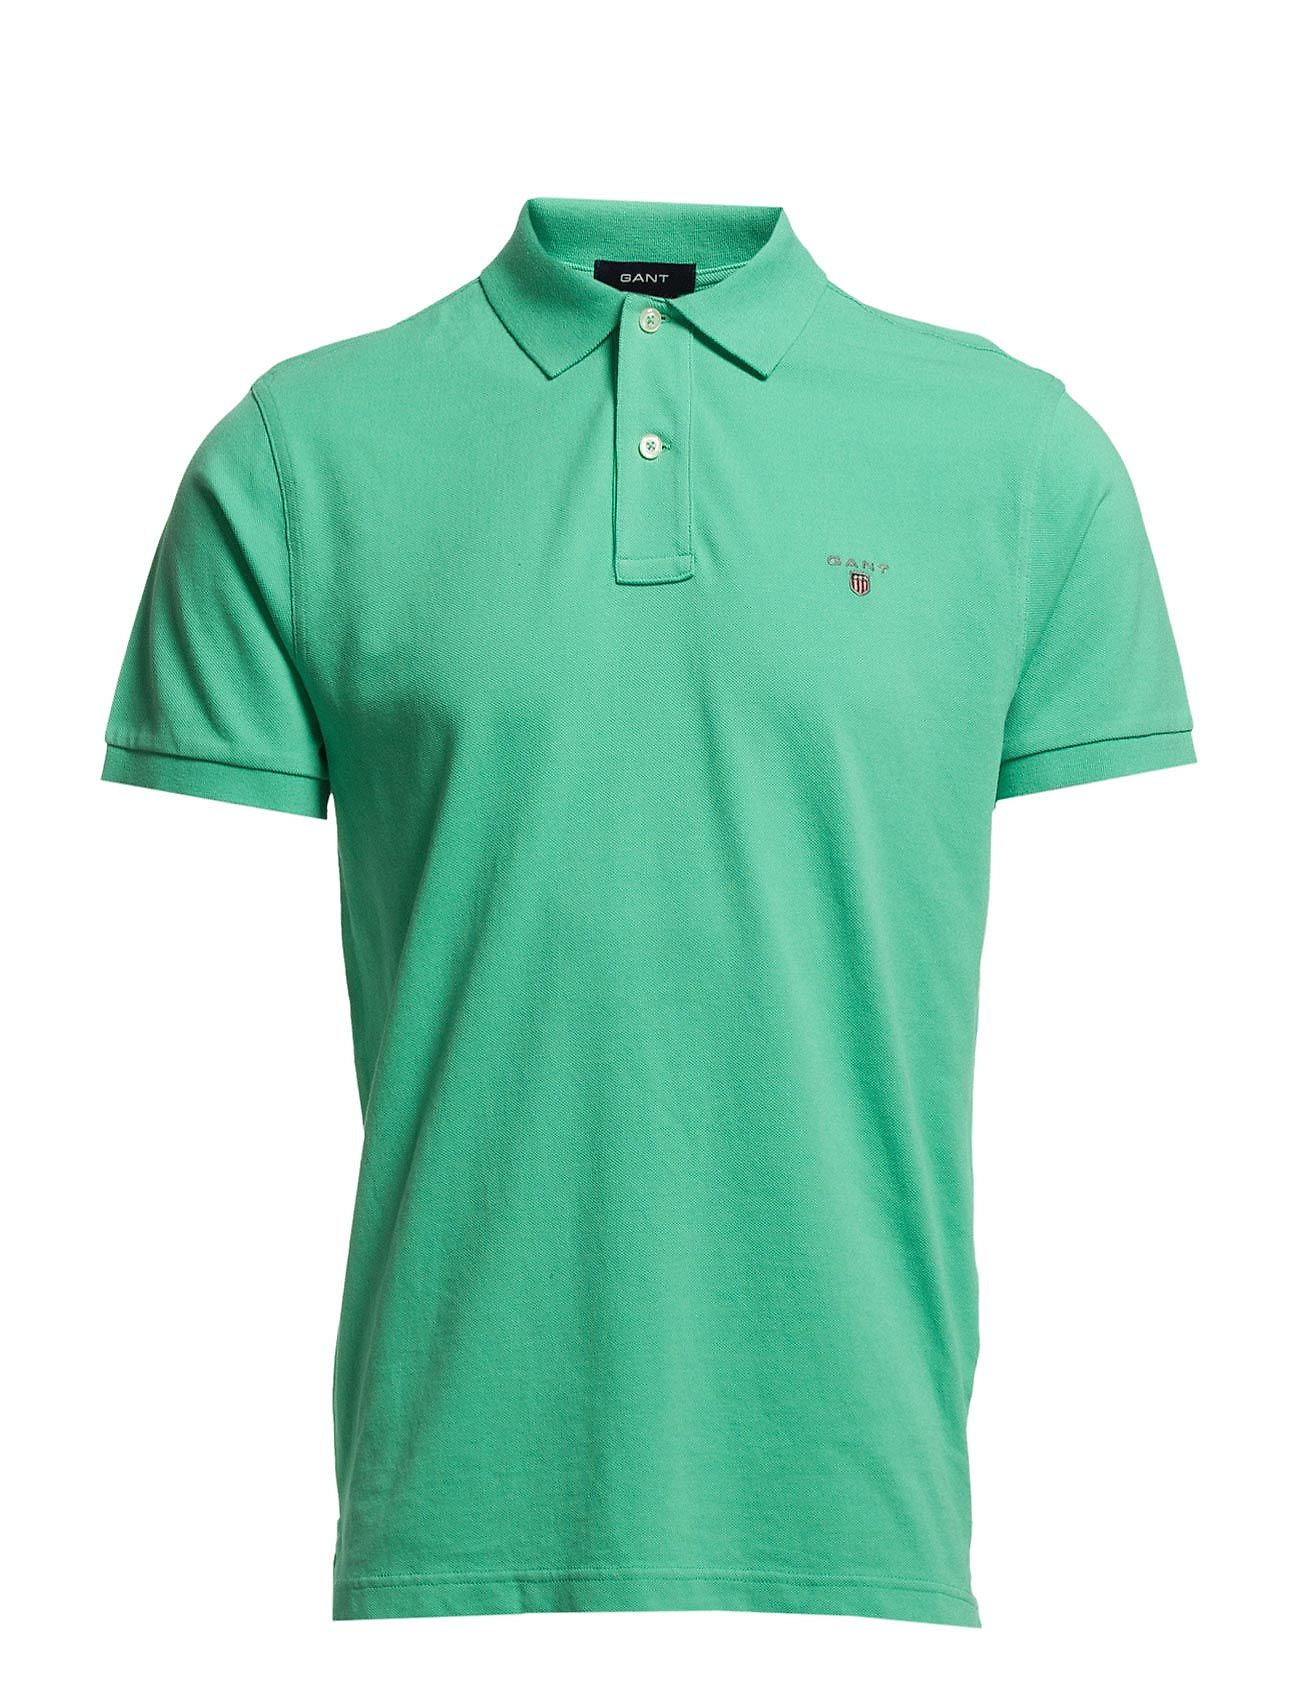 Gant THE ORIGINAL PIQUE SS RUGGER - EMERALD GREEN